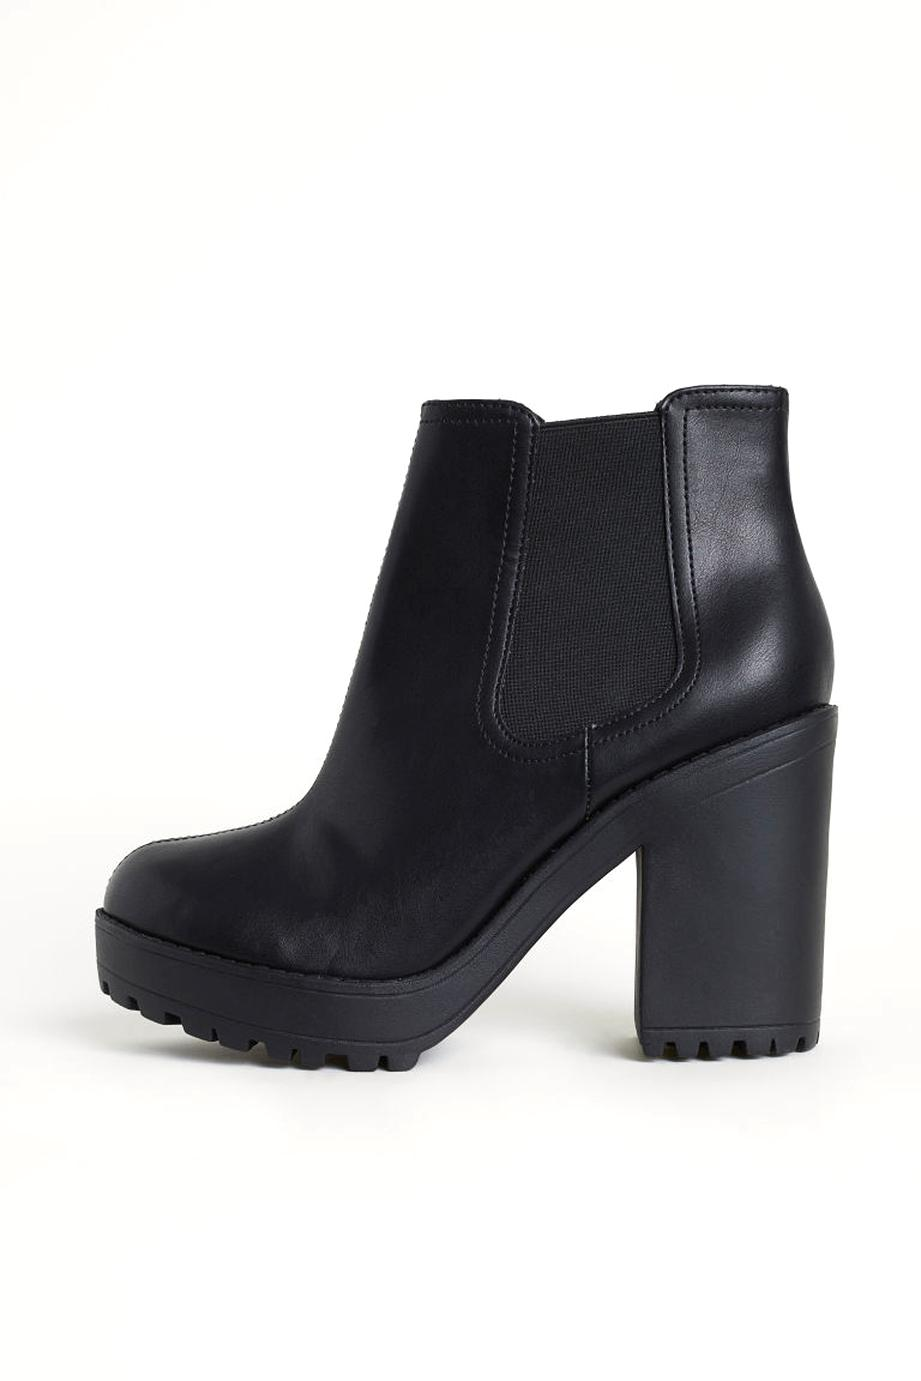 h m boots black for sale